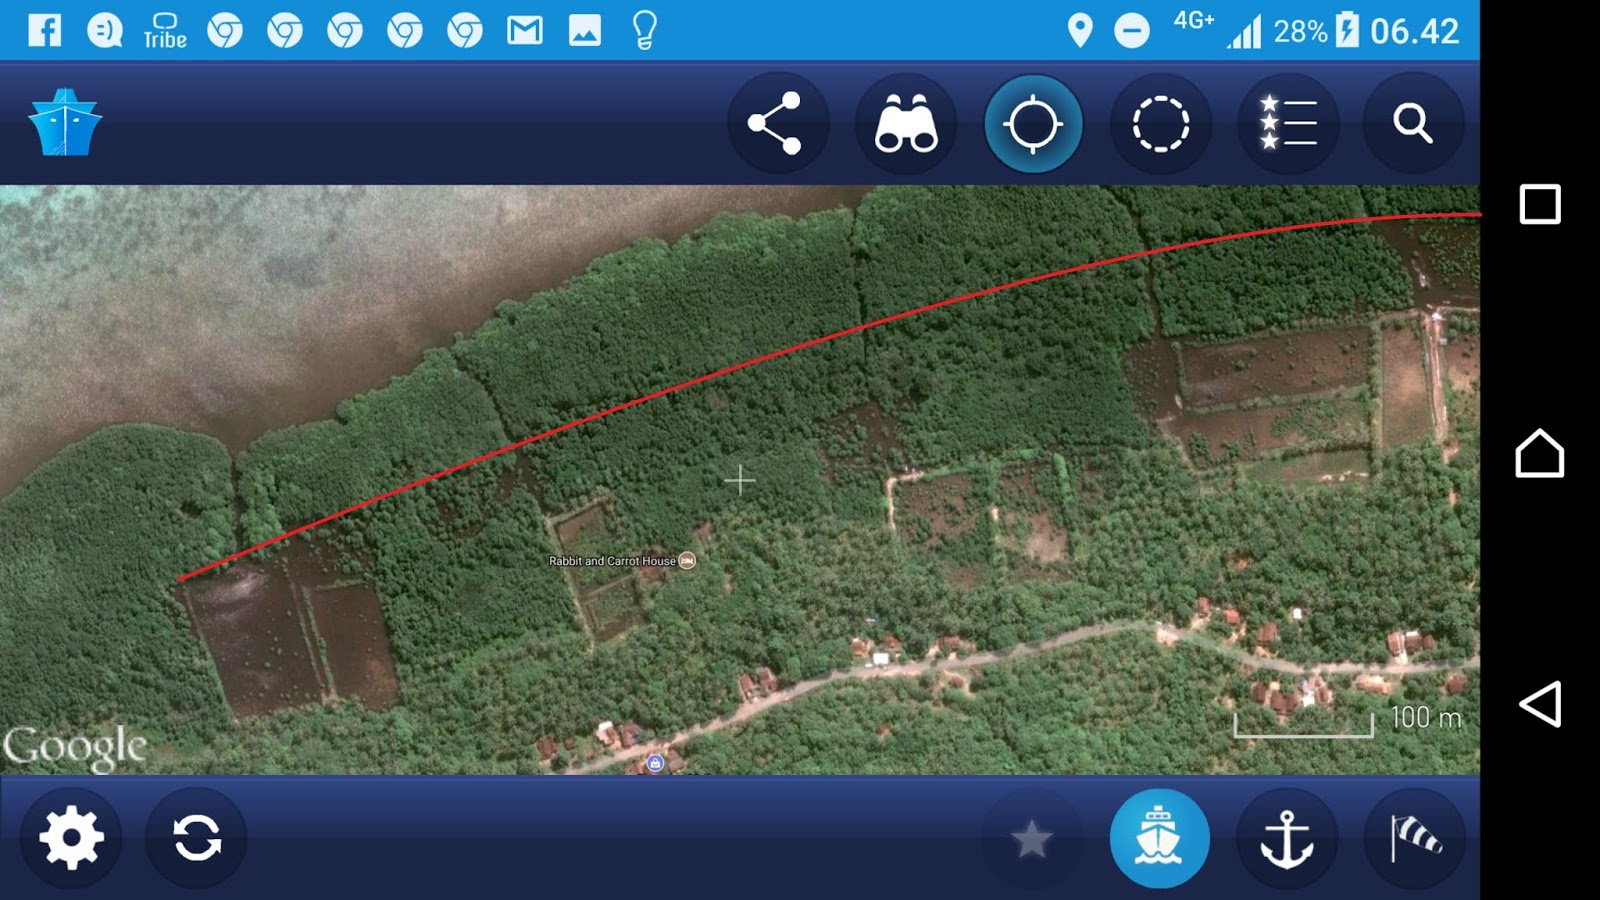 image 2 mangrove condition around rabbit and carol housed in cikmas red line marks the edge of previous ponds of period 1